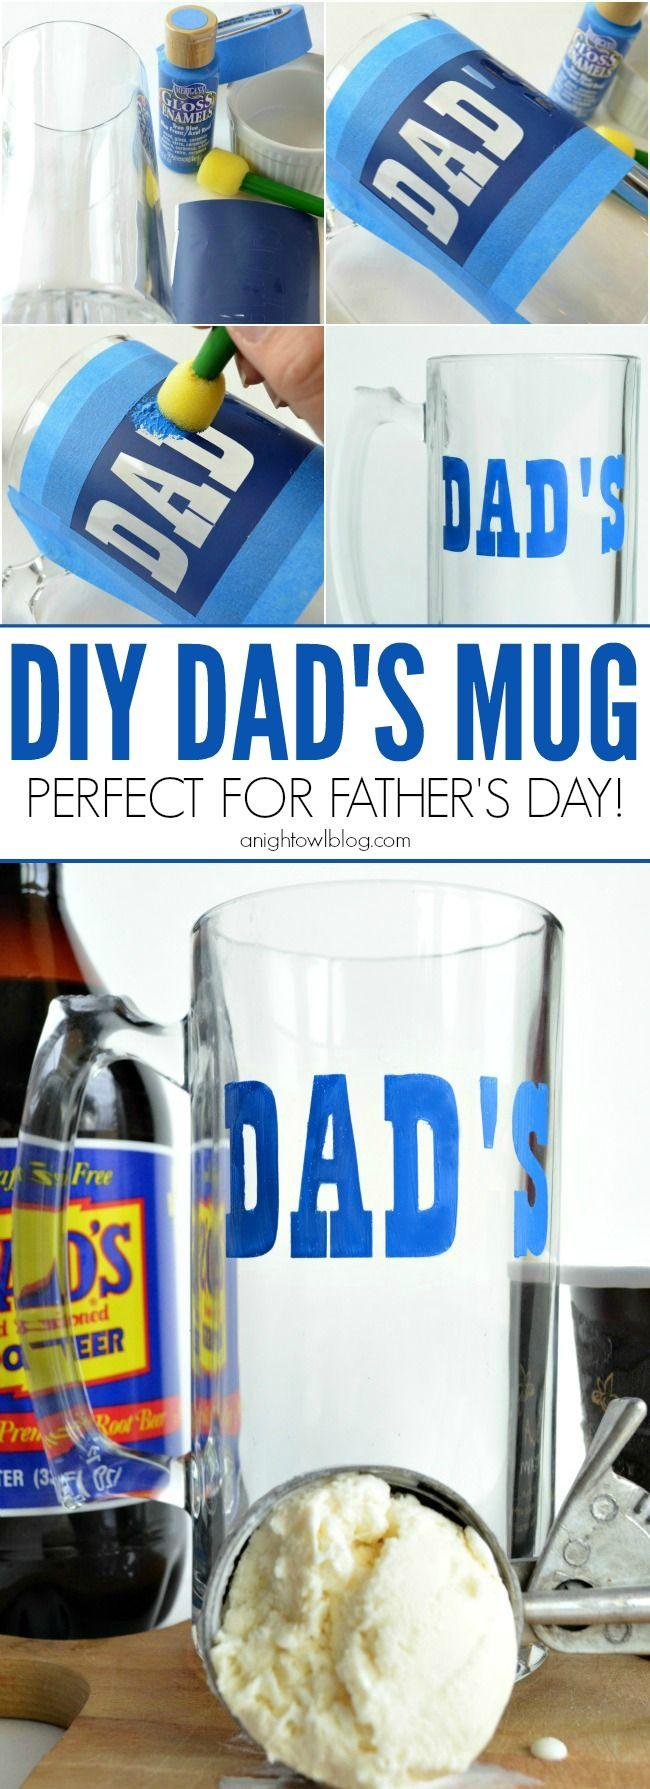 Father's Day Dad's Mug | Beer mugs, Gifts for father and ...